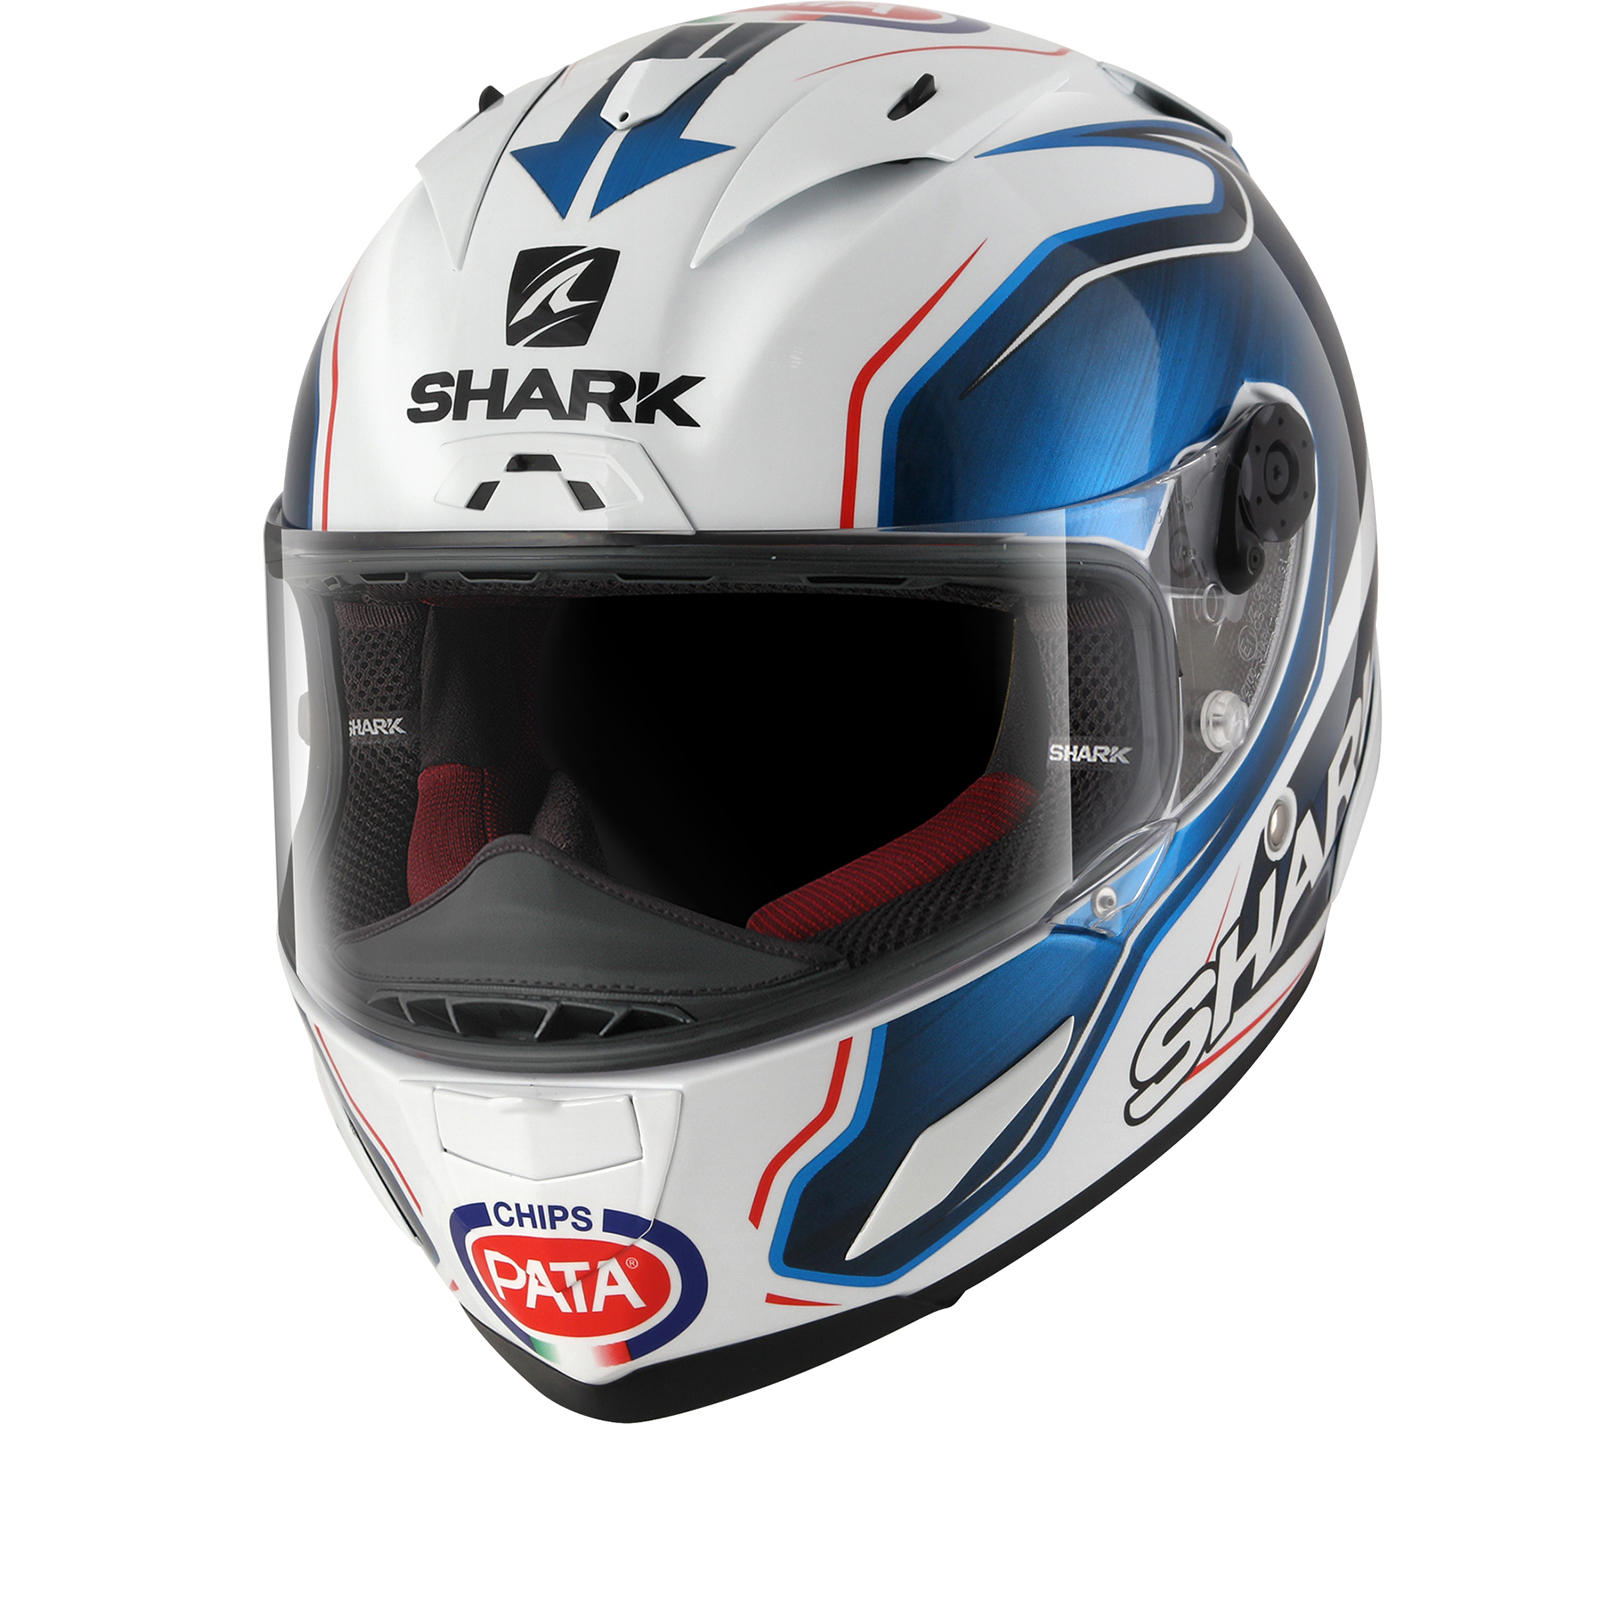 shark race r pro guintoli replica motorcycle helmet racing removable interior ebay. Black Bedroom Furniture Sets. Home Design Ideas